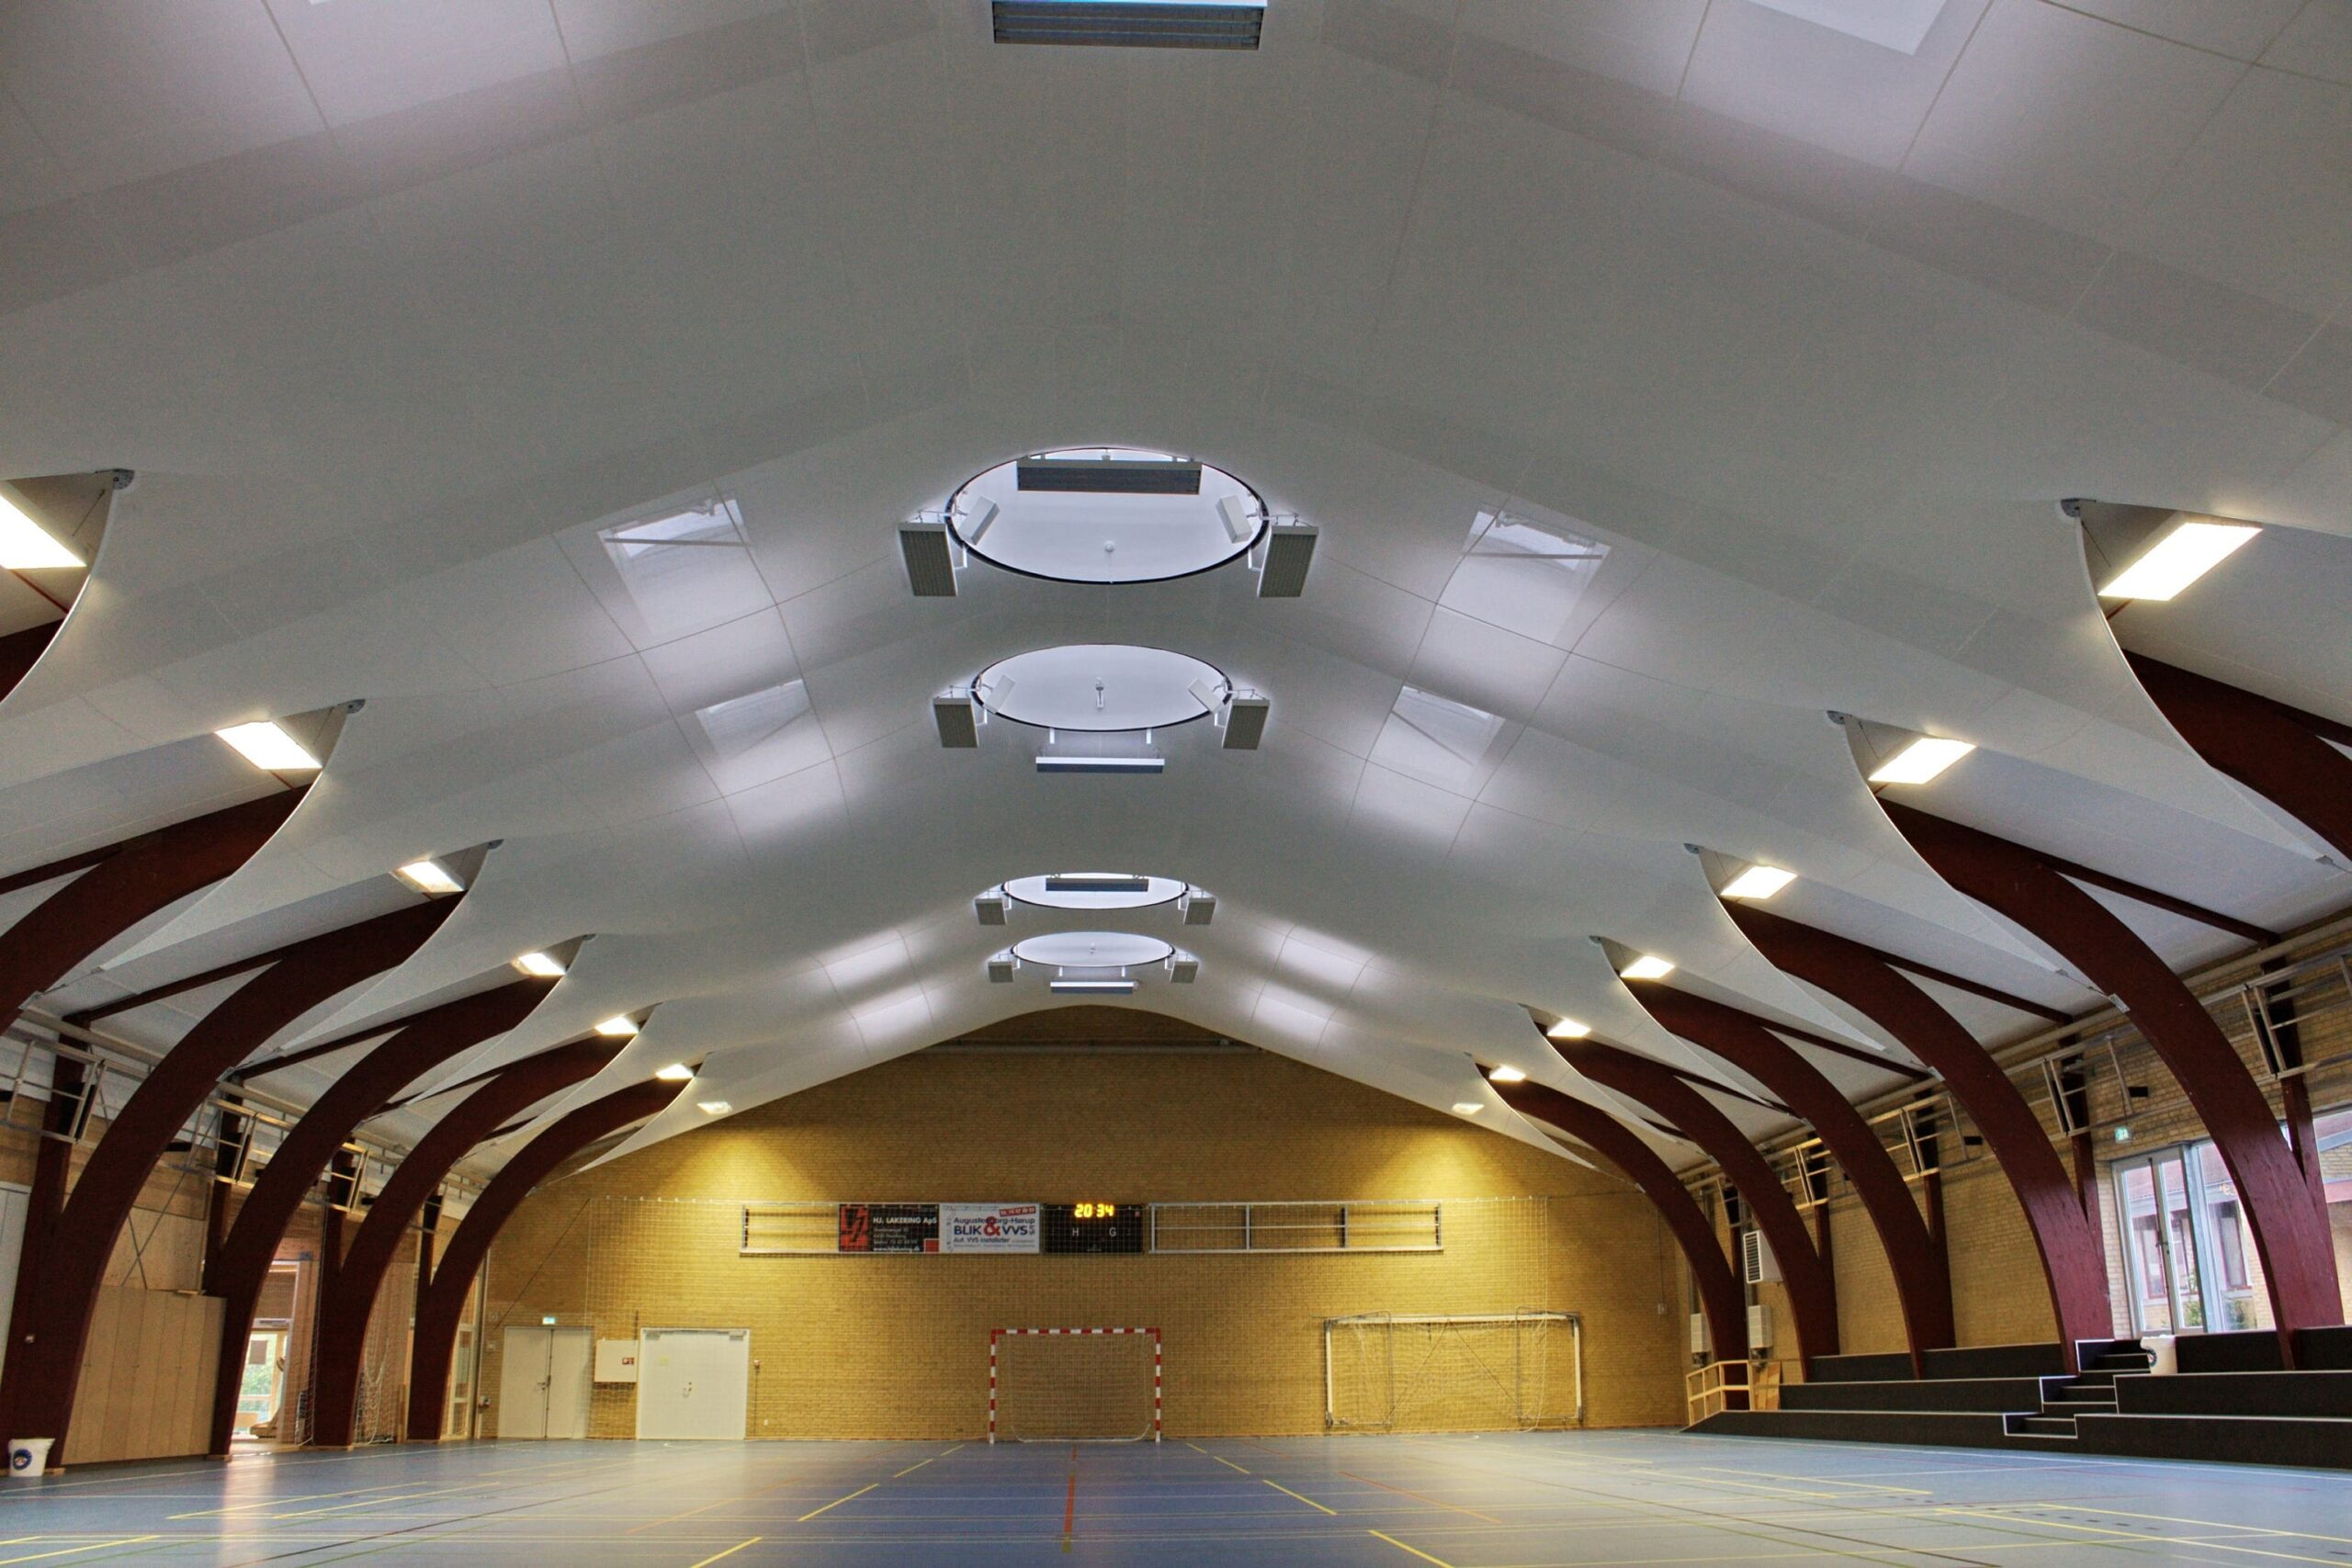 Fynshav Sports Hall